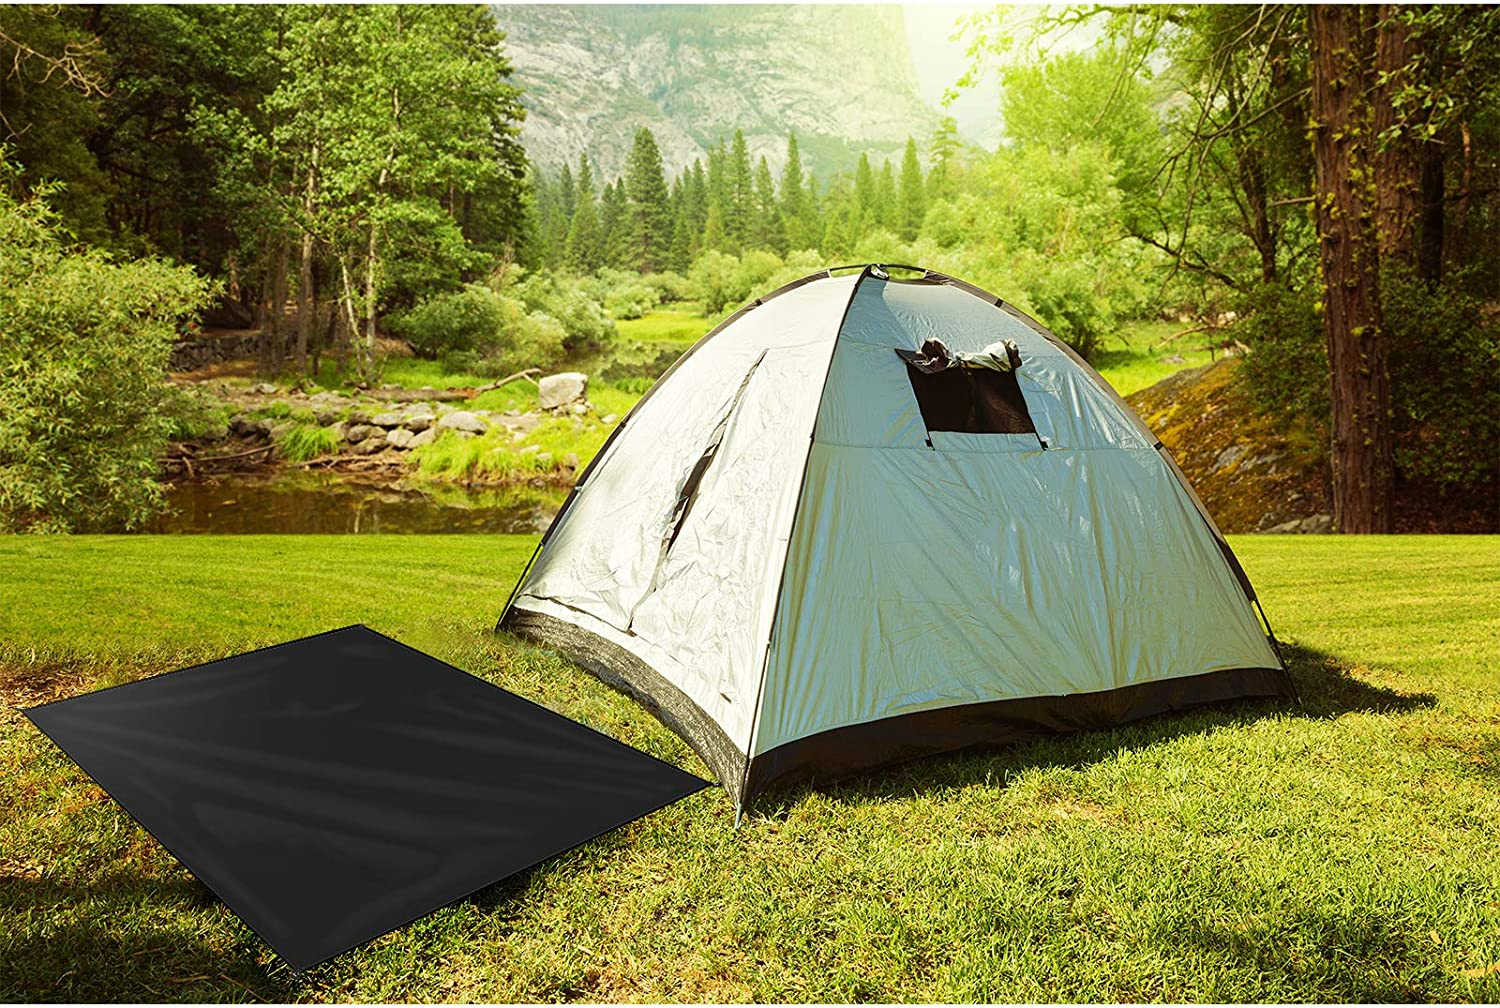 Skylety Waterproof Camping Tarp 79 x 82 Inch Large Camping Tent Tarp Lightweight with 4 Tent Pegs for Camping Hiking Compact Outdoor Gear to Cover Sun or Rain